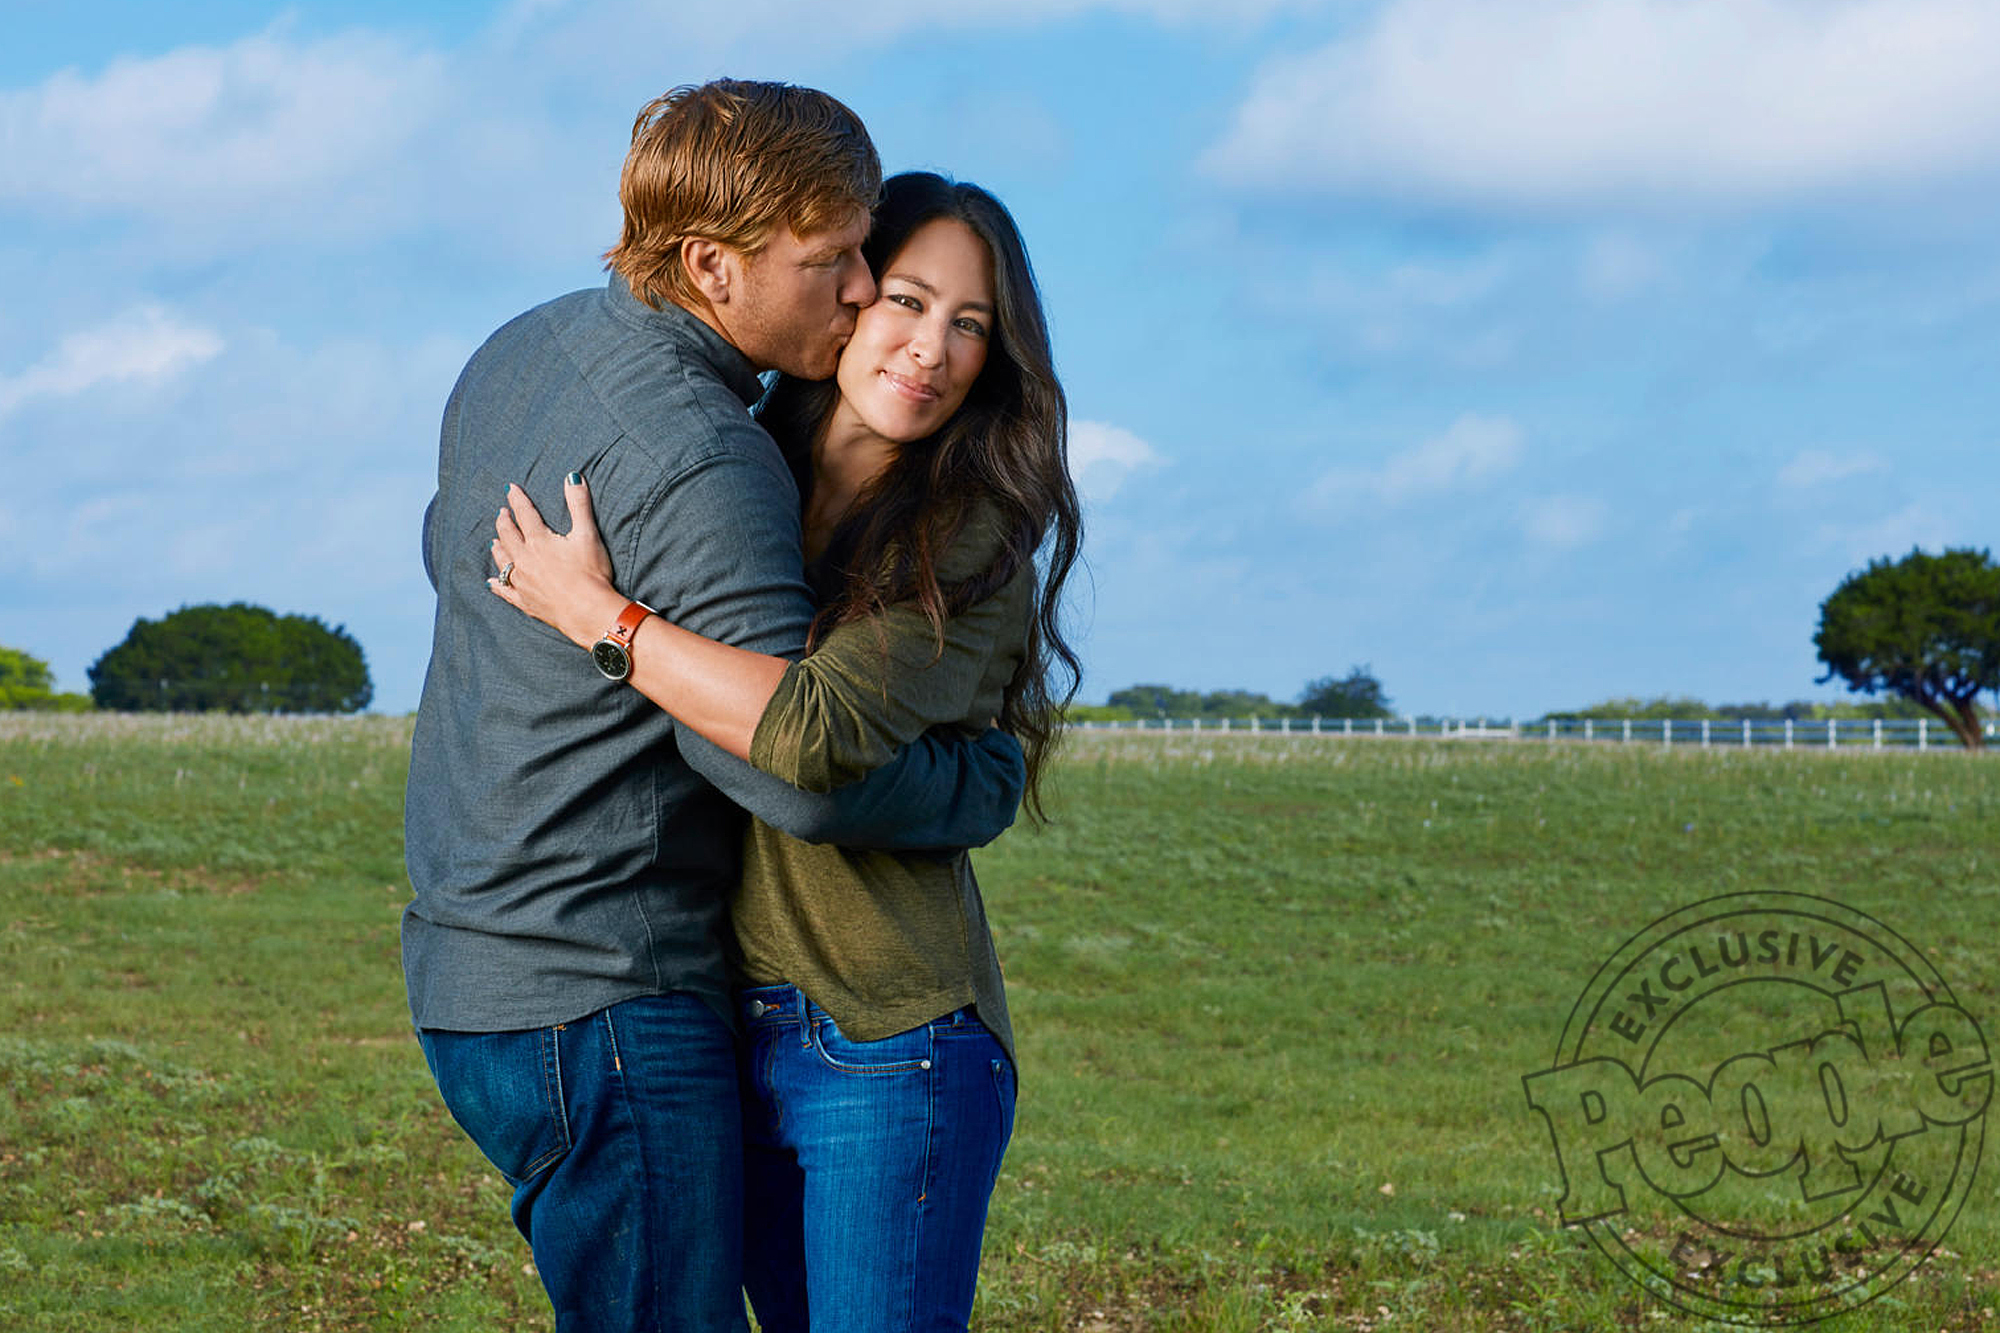 Chip Gaines Says 'My Heart Is Full' as He Shares New Aww-Worthy Photo of 3-Week-Old Son Crew joanna-gaines1b